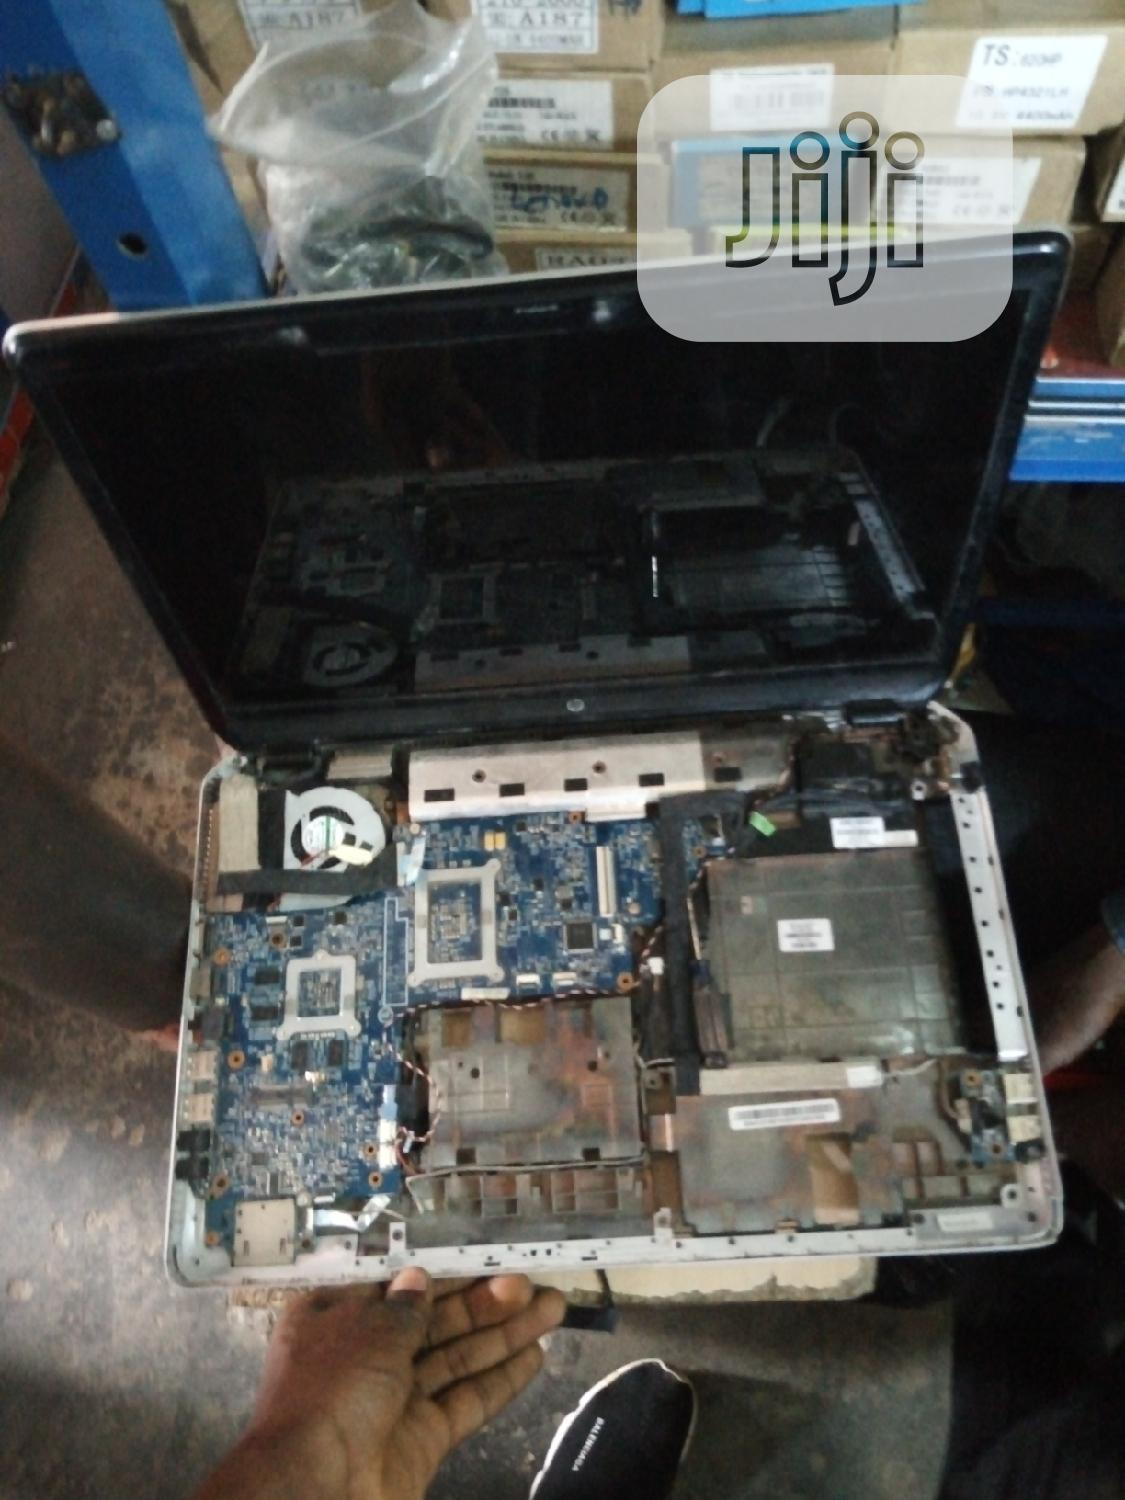 Archive: Repairs and Maintenance of Computer System.